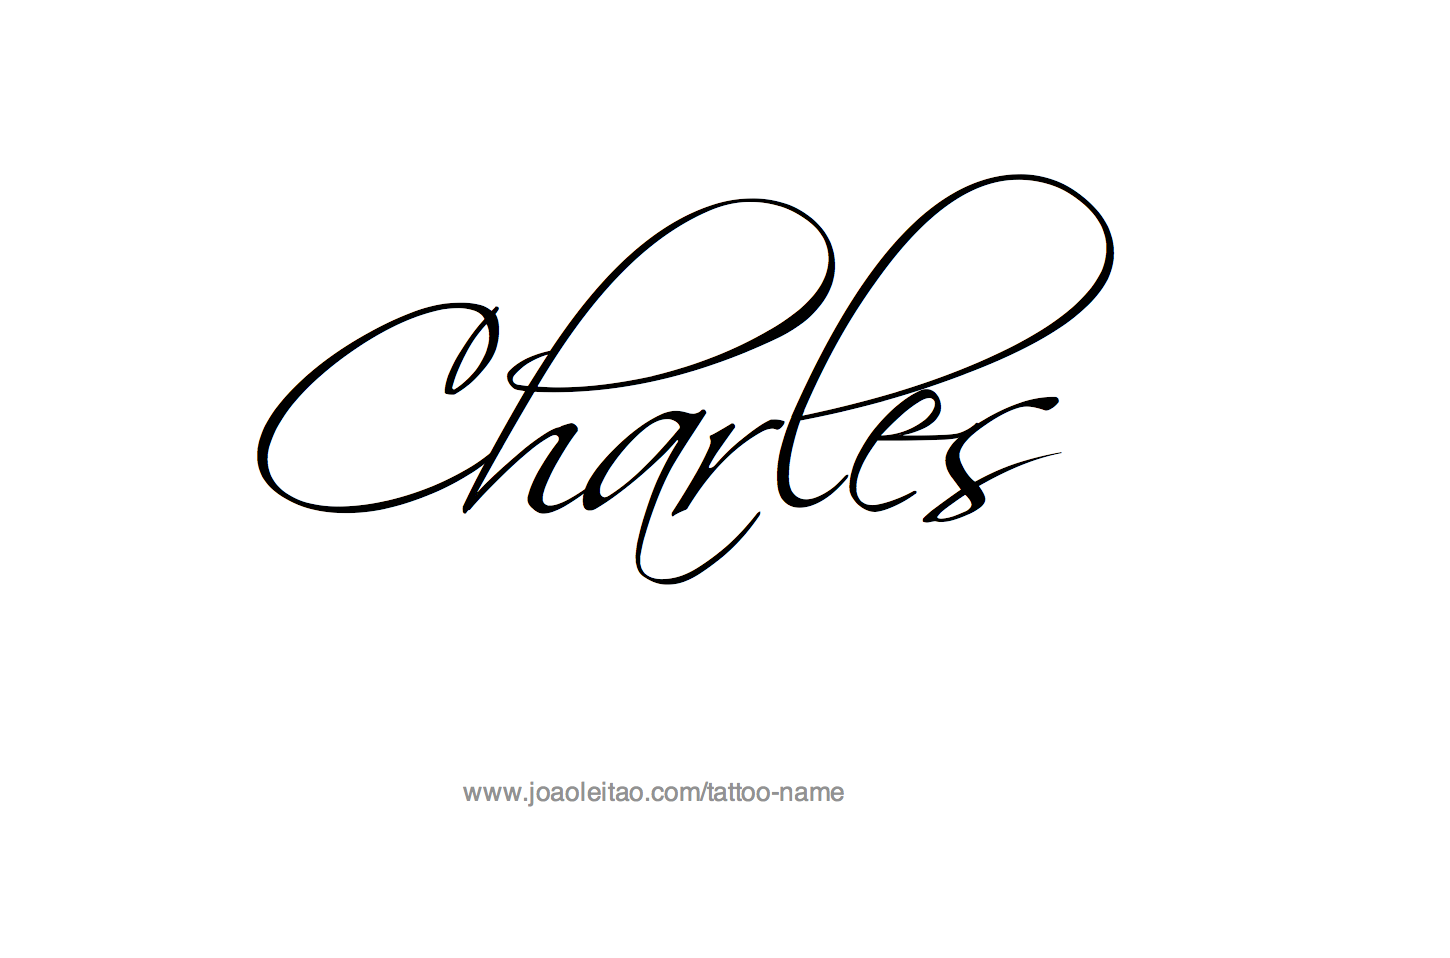 Charles name tattoo designs tattoo designs and tattoo page with 31 different design font styles for the name charles make charles name tattoo biocorpaavc Images